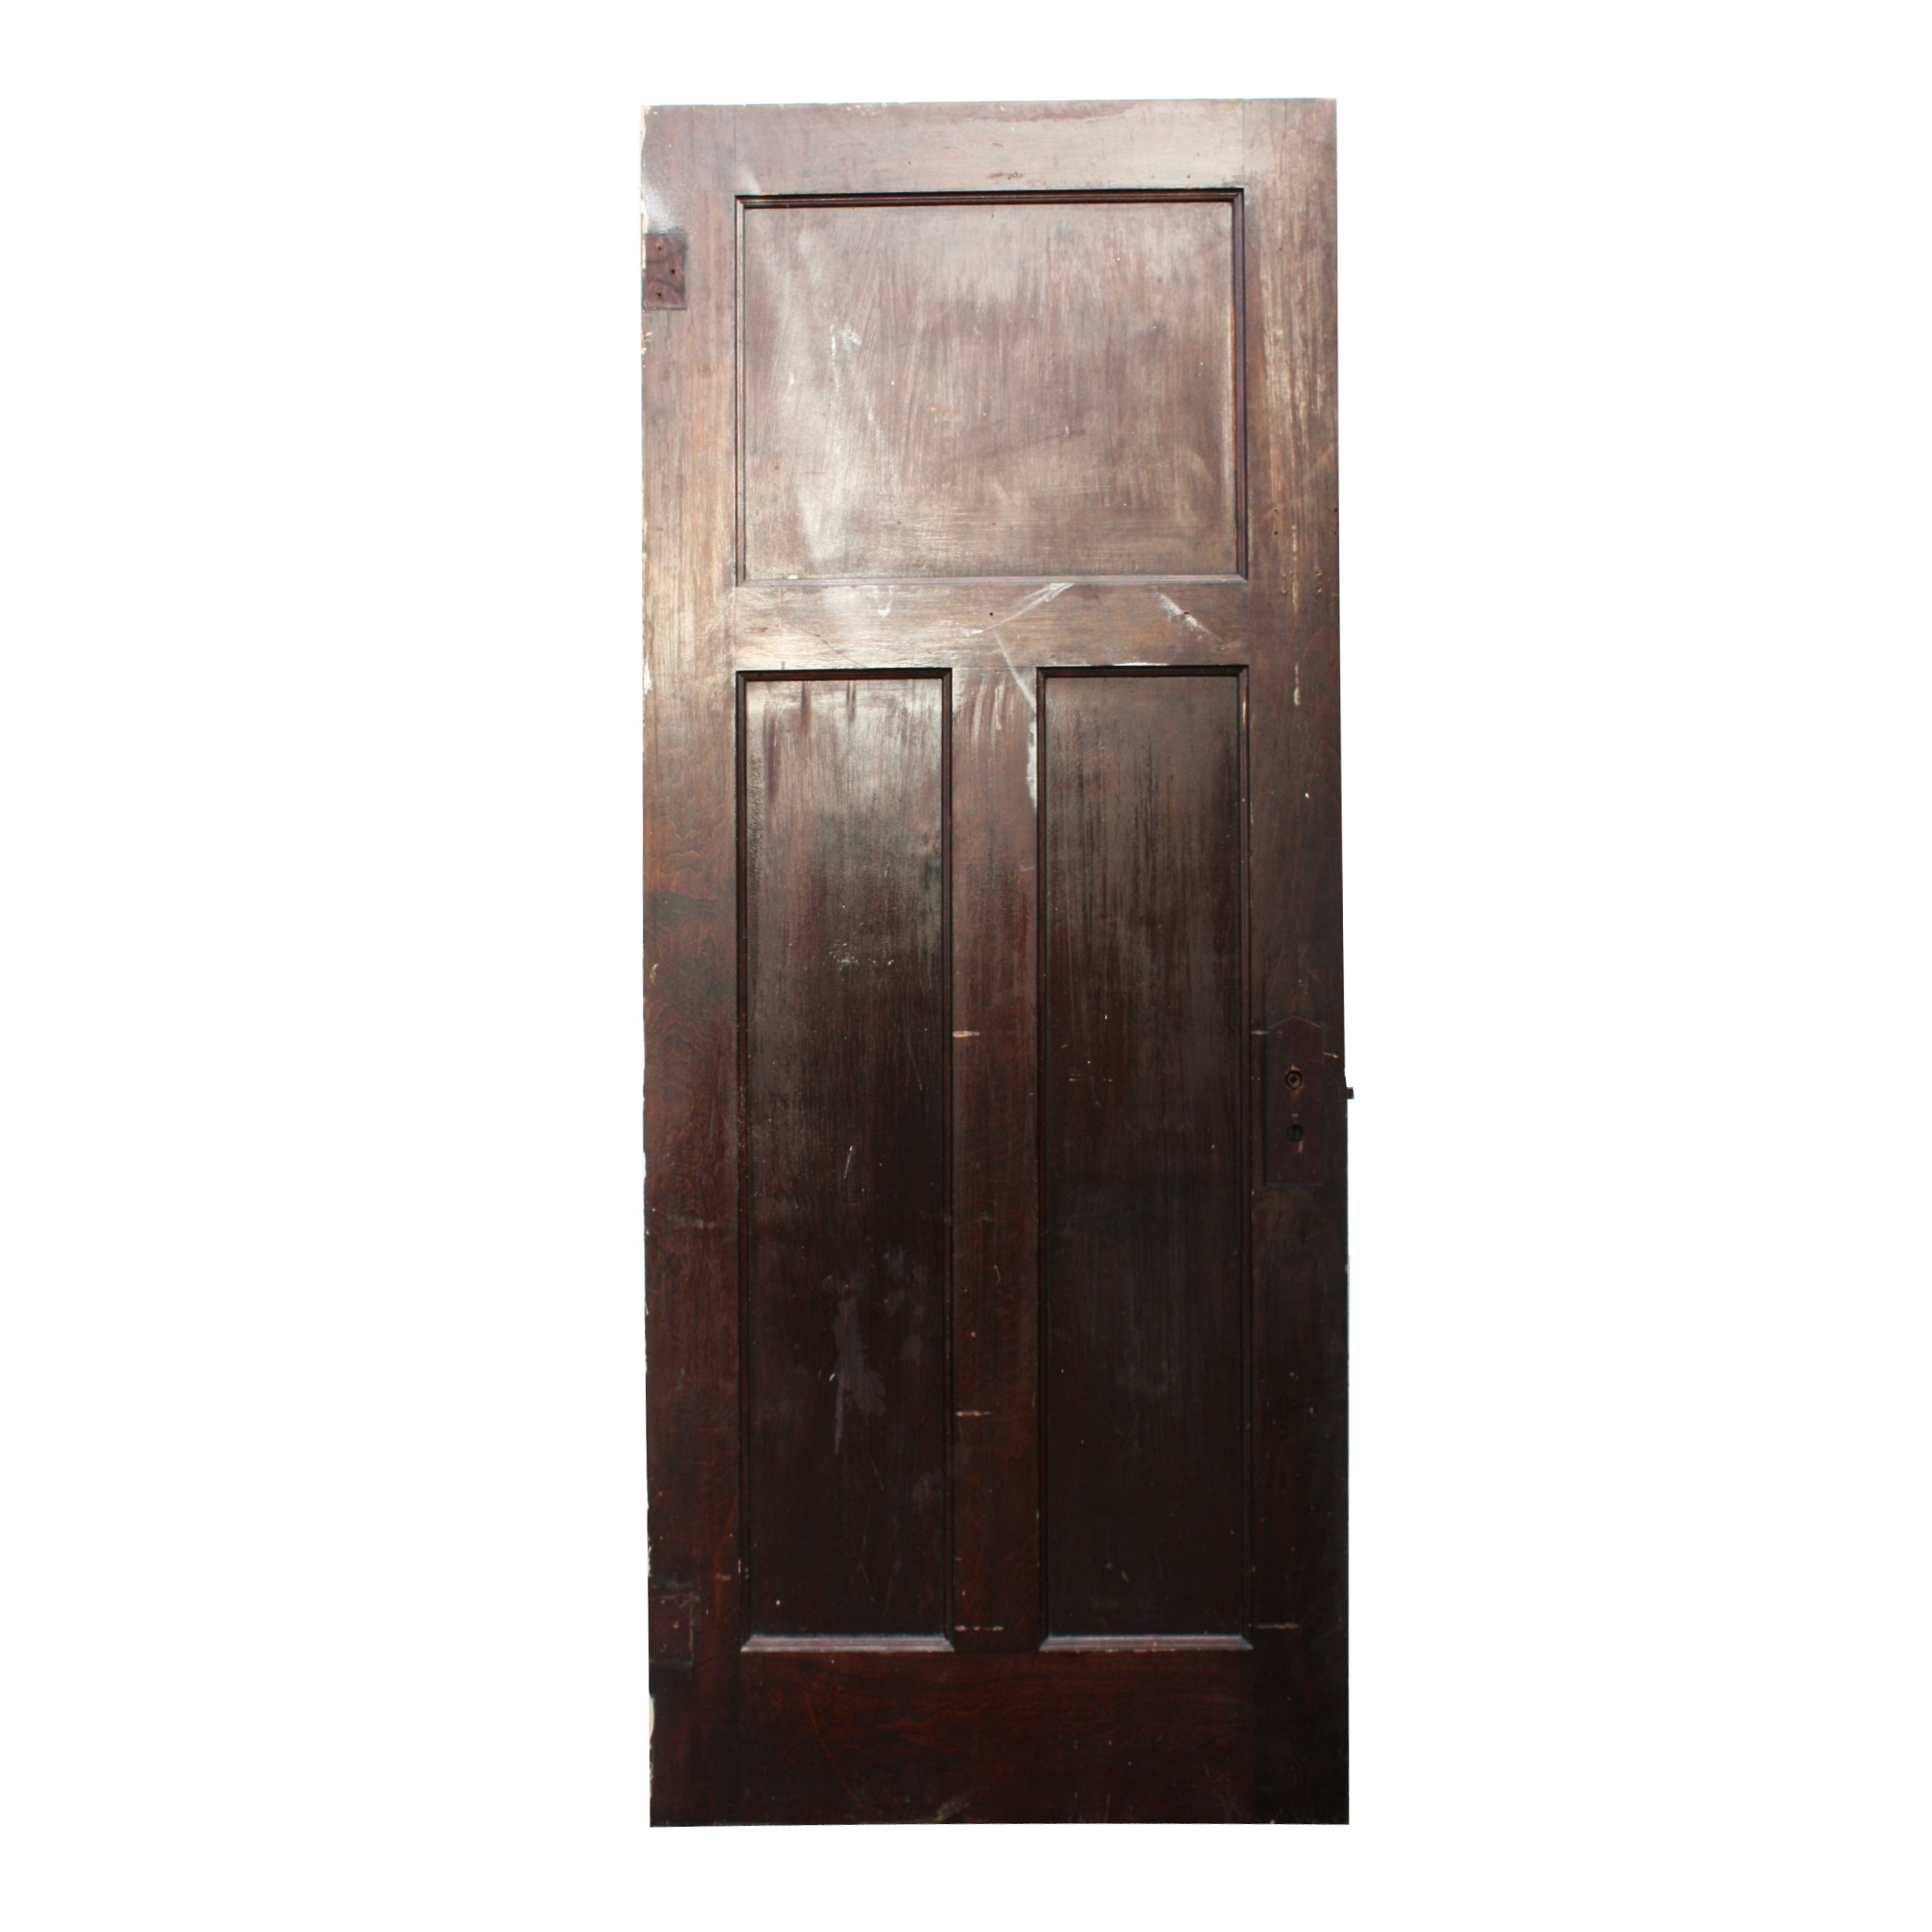 Antique three panel solid wood door stained finish nid27 for Solid wood exterior doors for sale